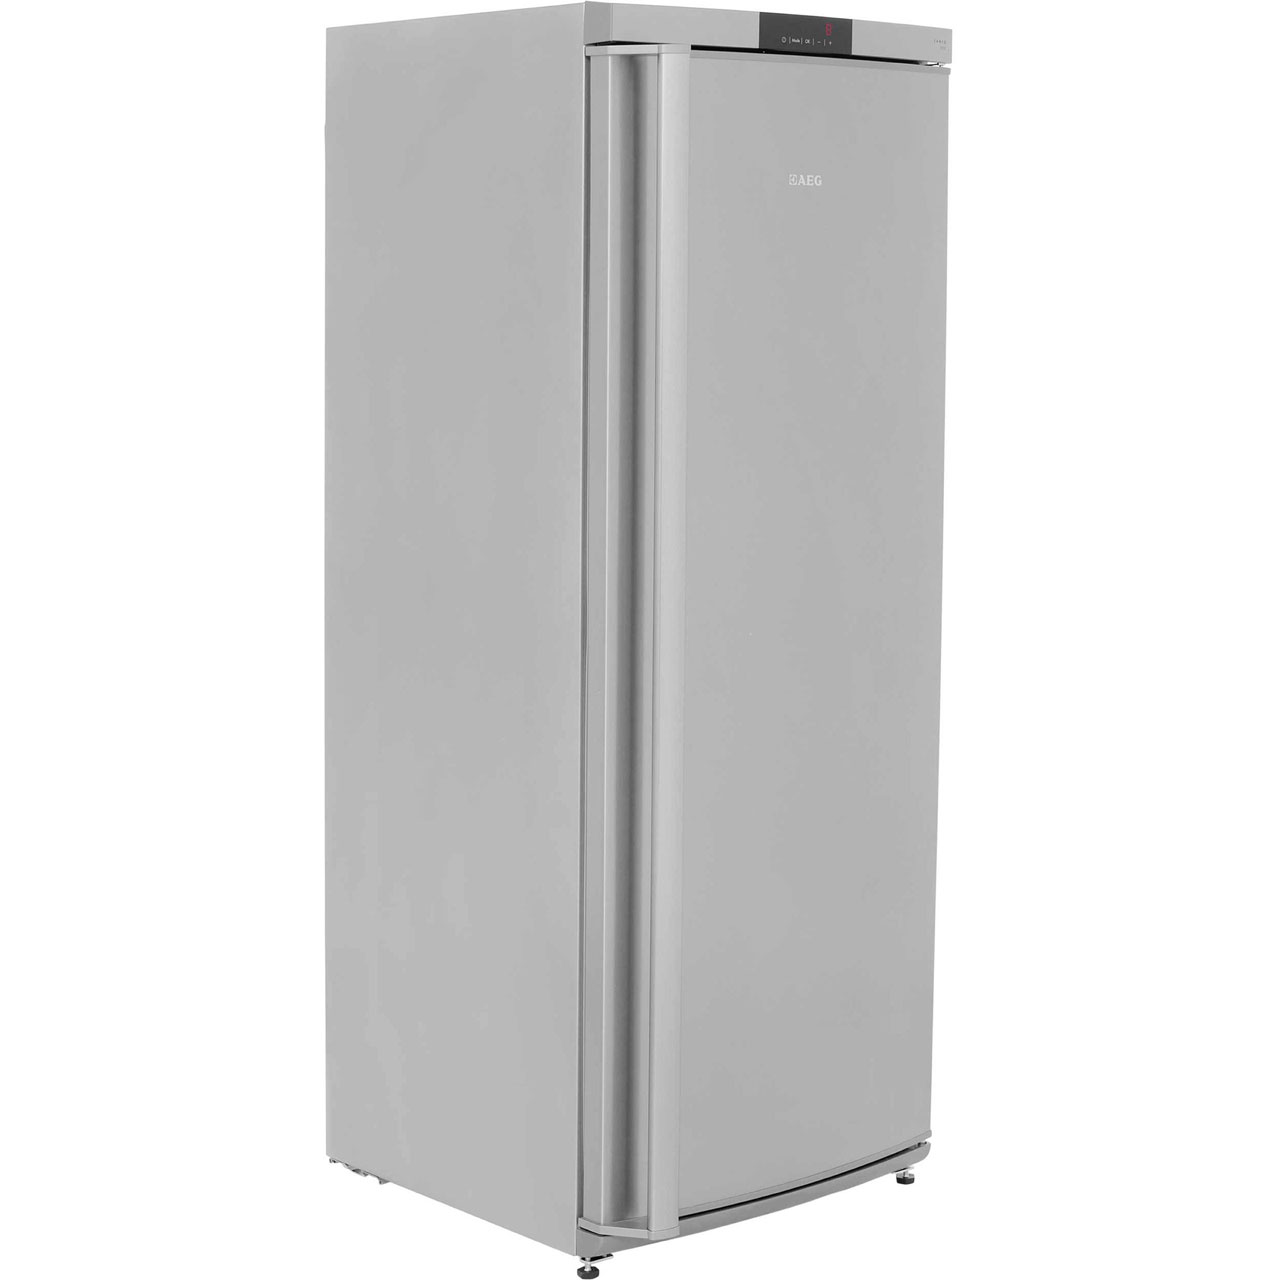 AEG Santo S63300KDX0 Fridge - Stainless Steel